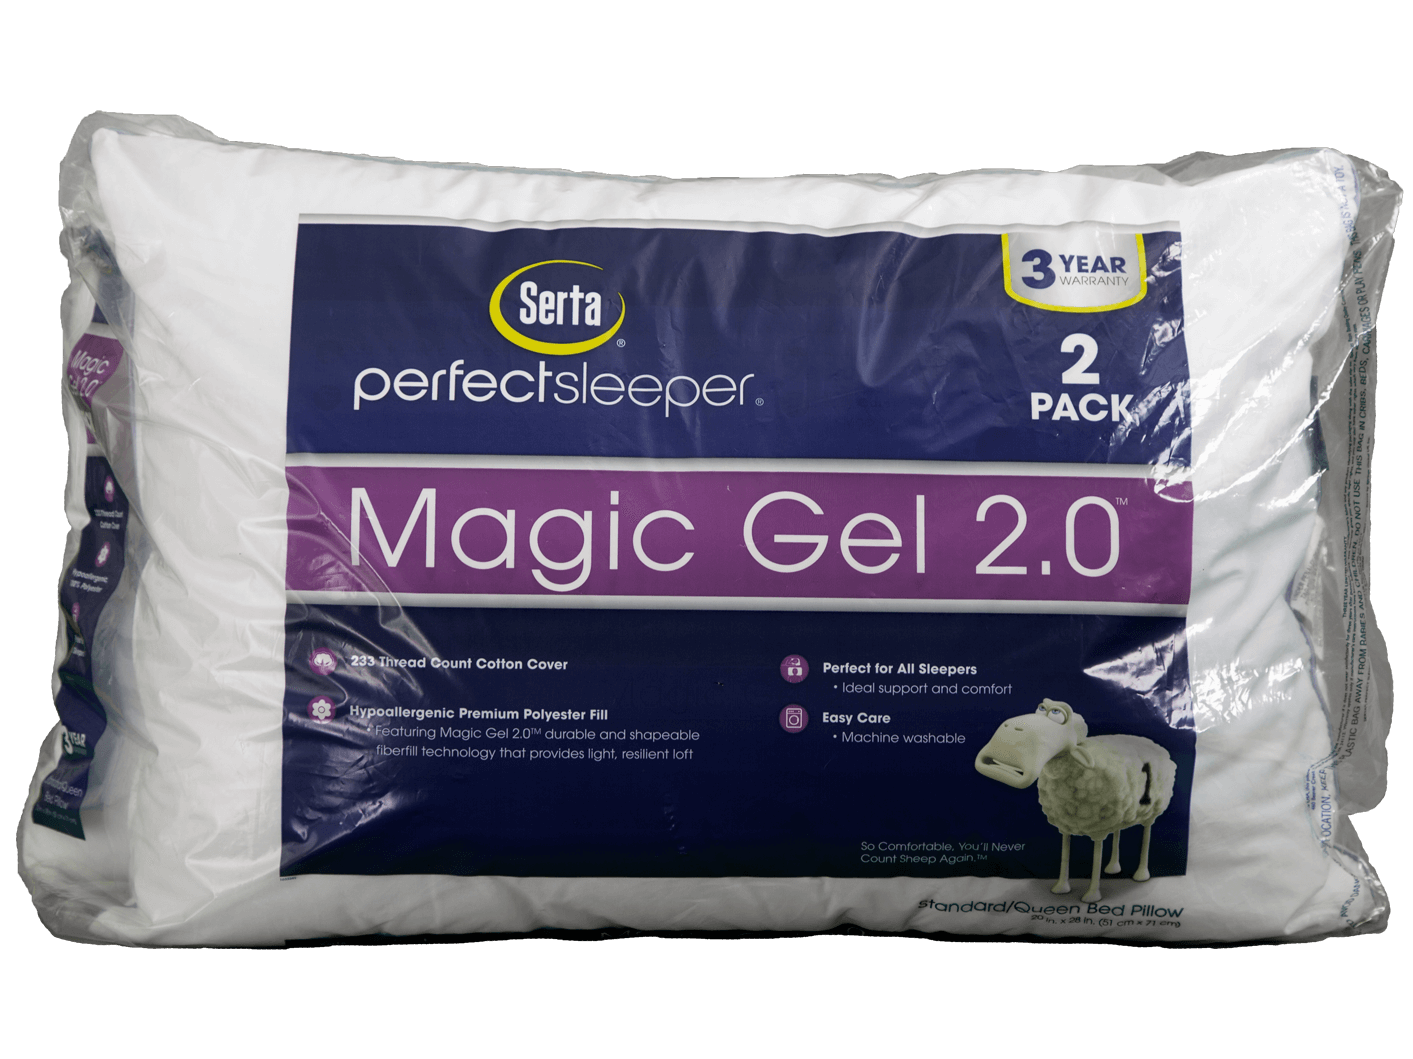 magicgel 2 0 pillow 2 pack